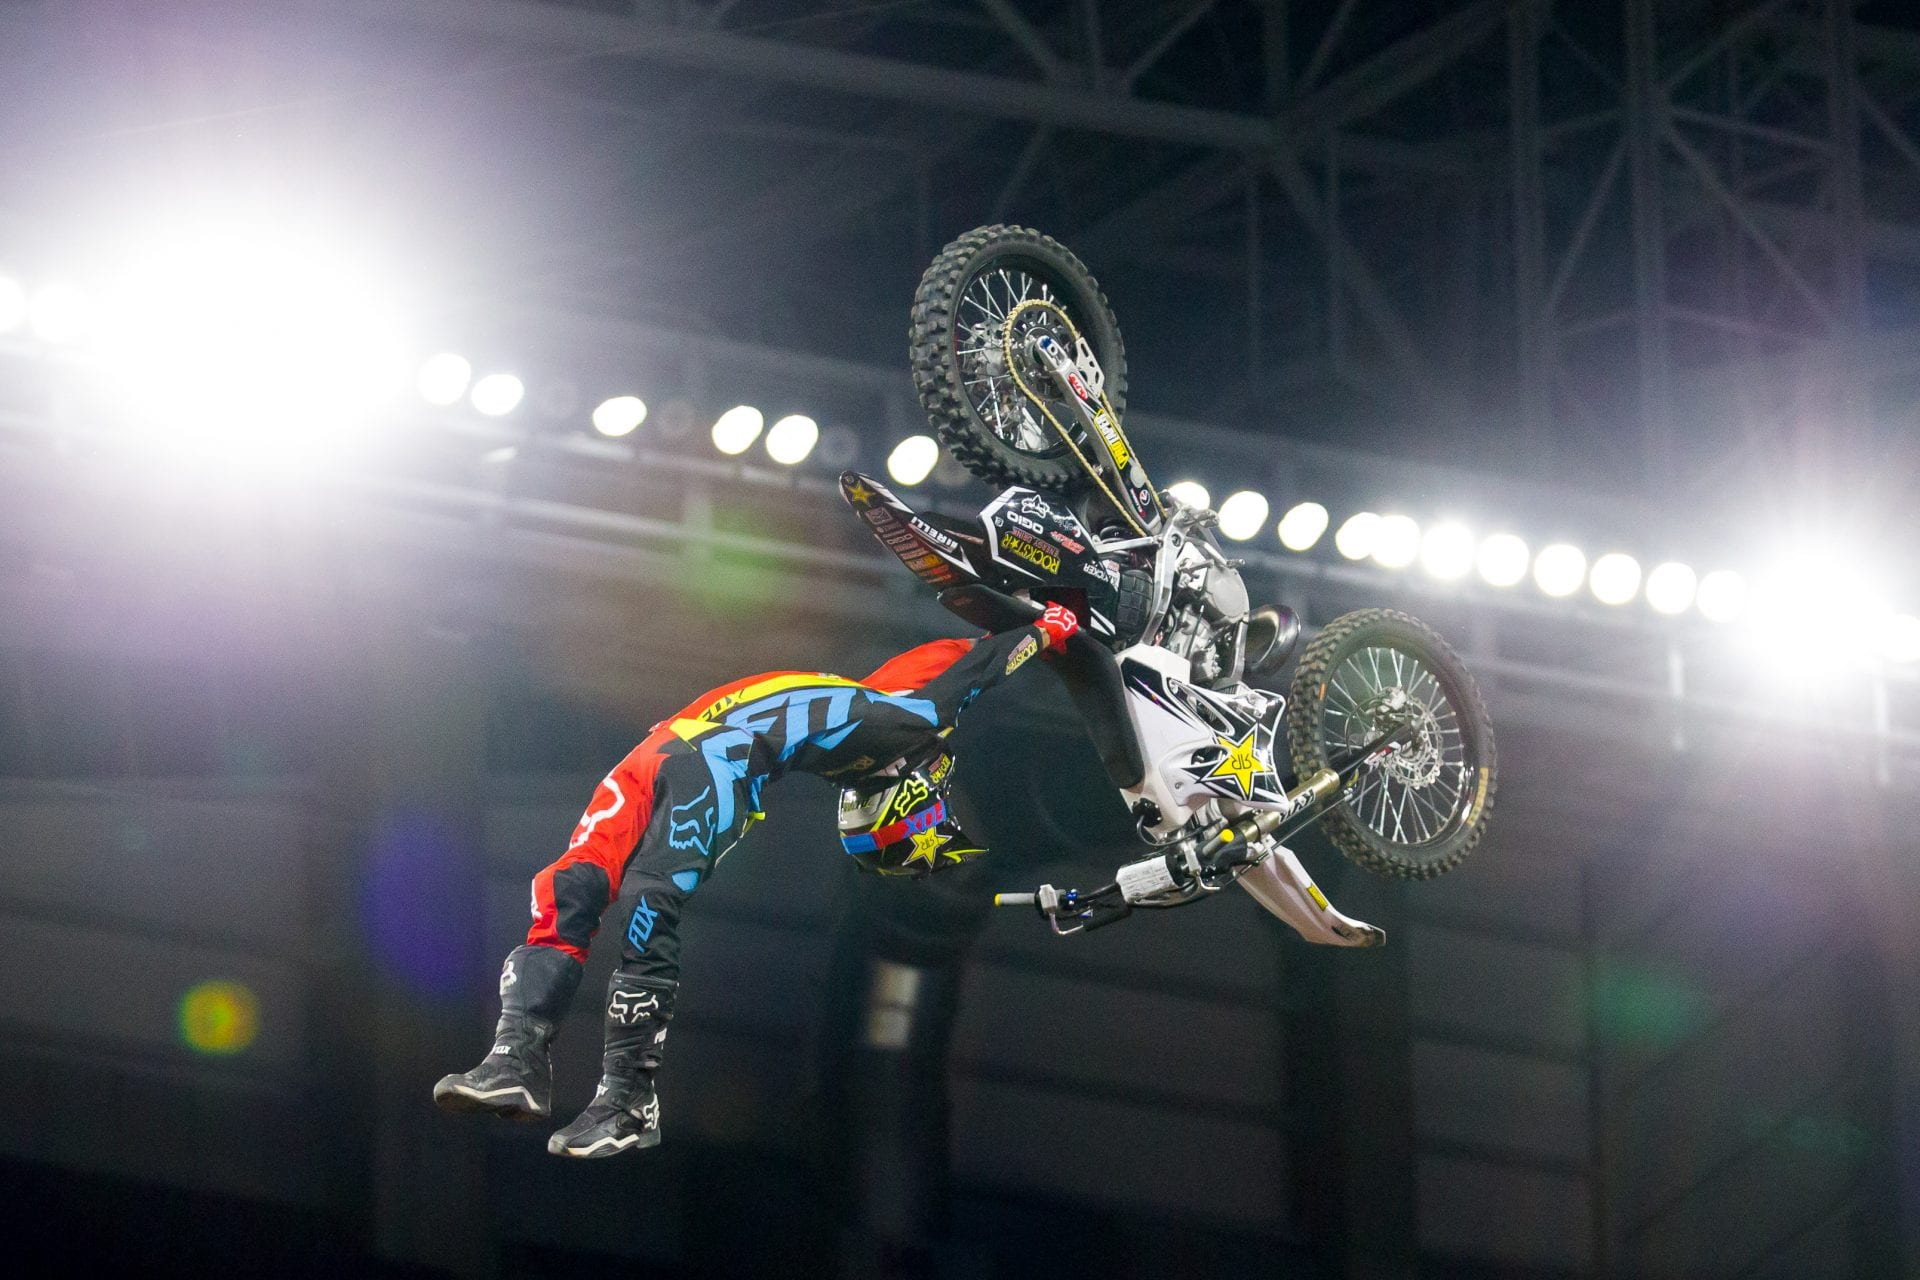 X-Games, dirt bikes, jumping, motocross